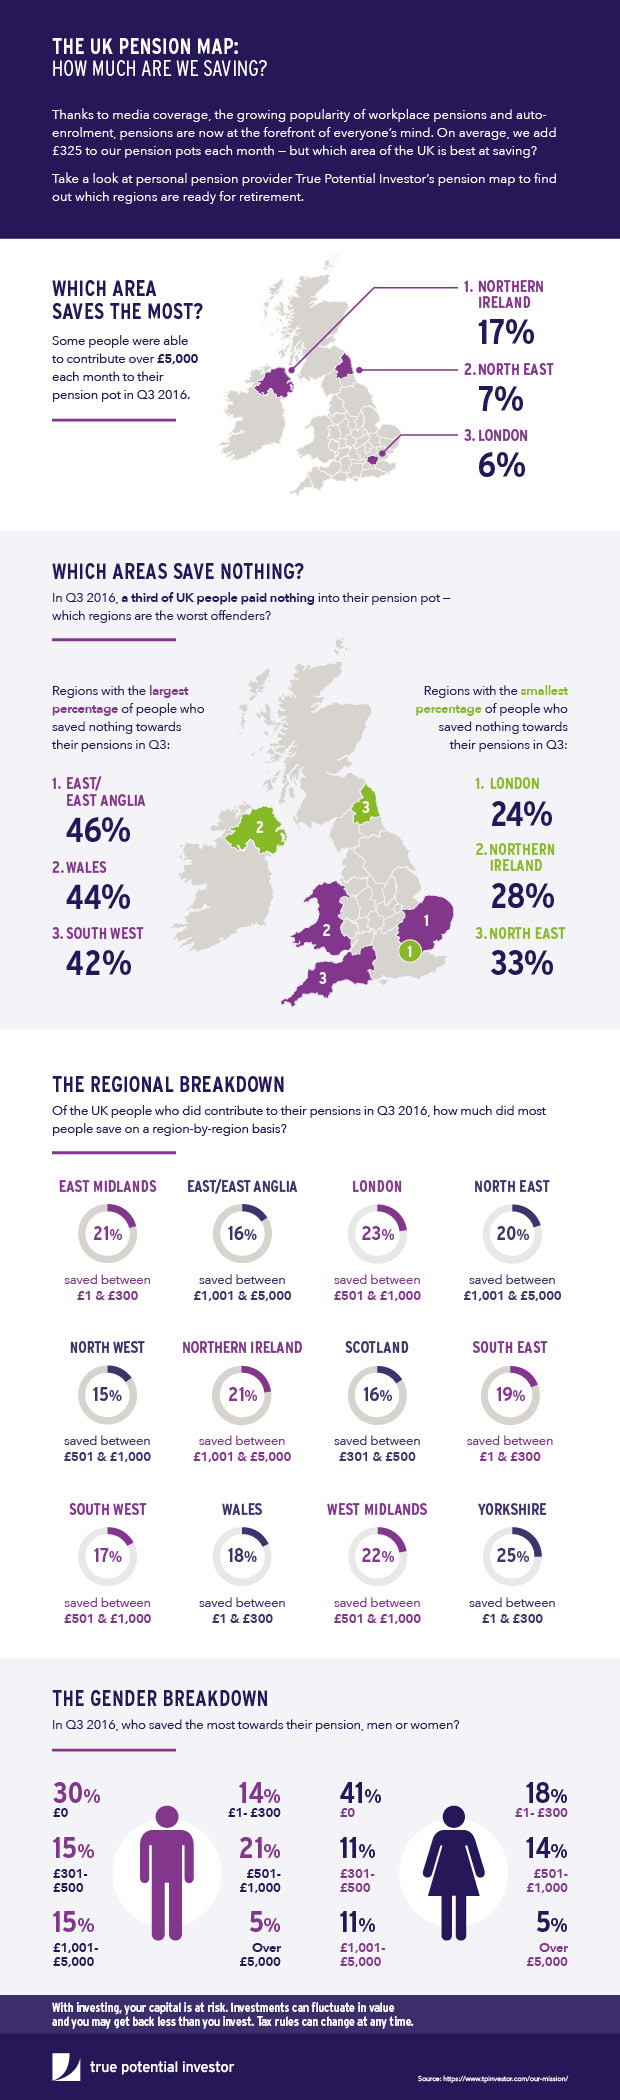 Pensions Map Infographic: Savings Made Across the UK